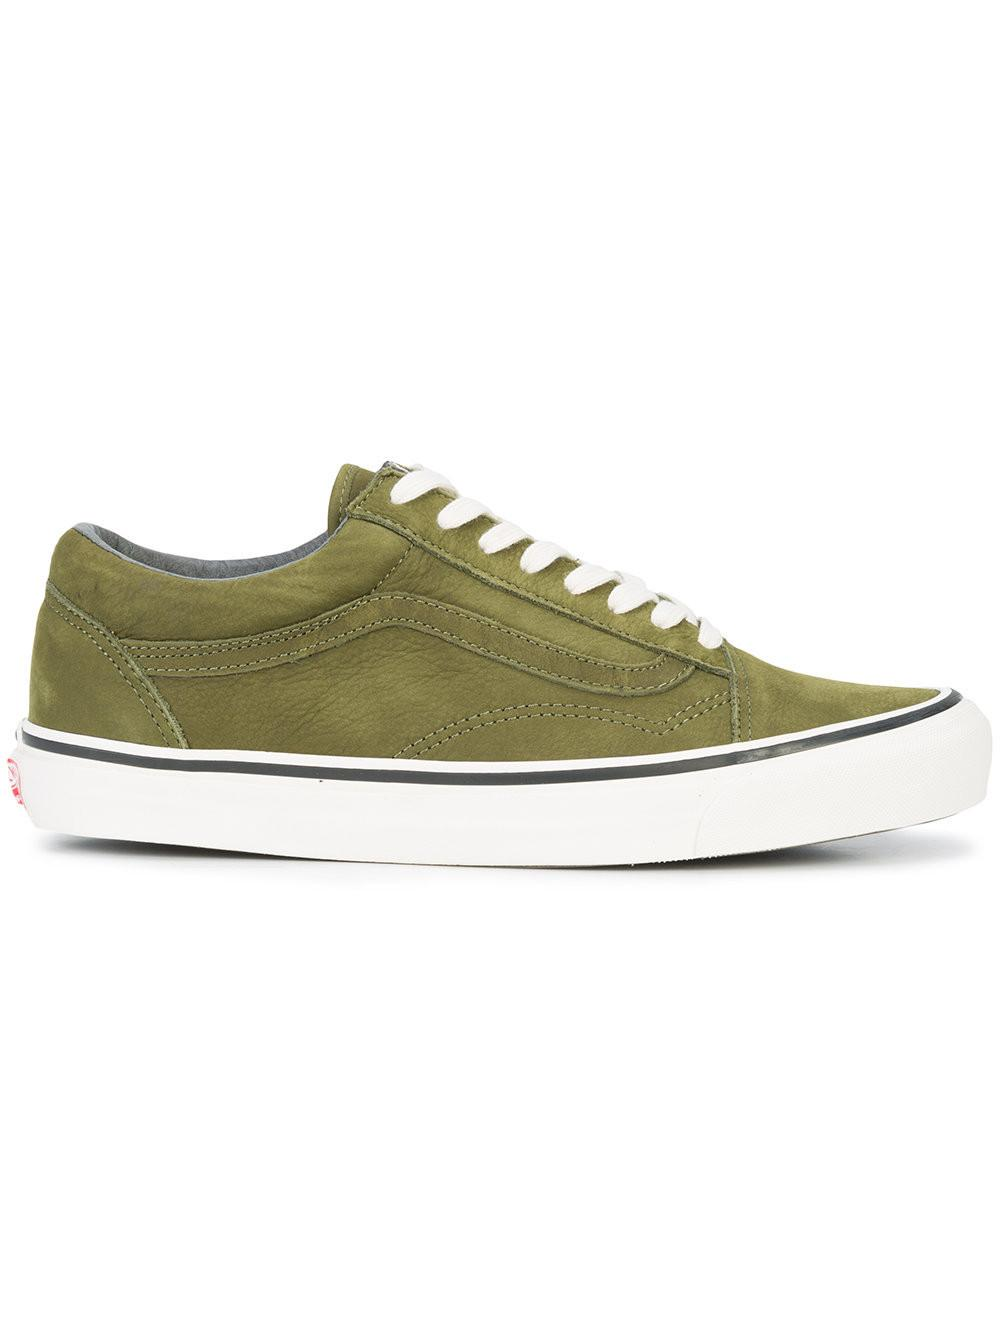 37b79520c6 Vans Og Old Skool Lx Nubuck Sneakers In Army Green